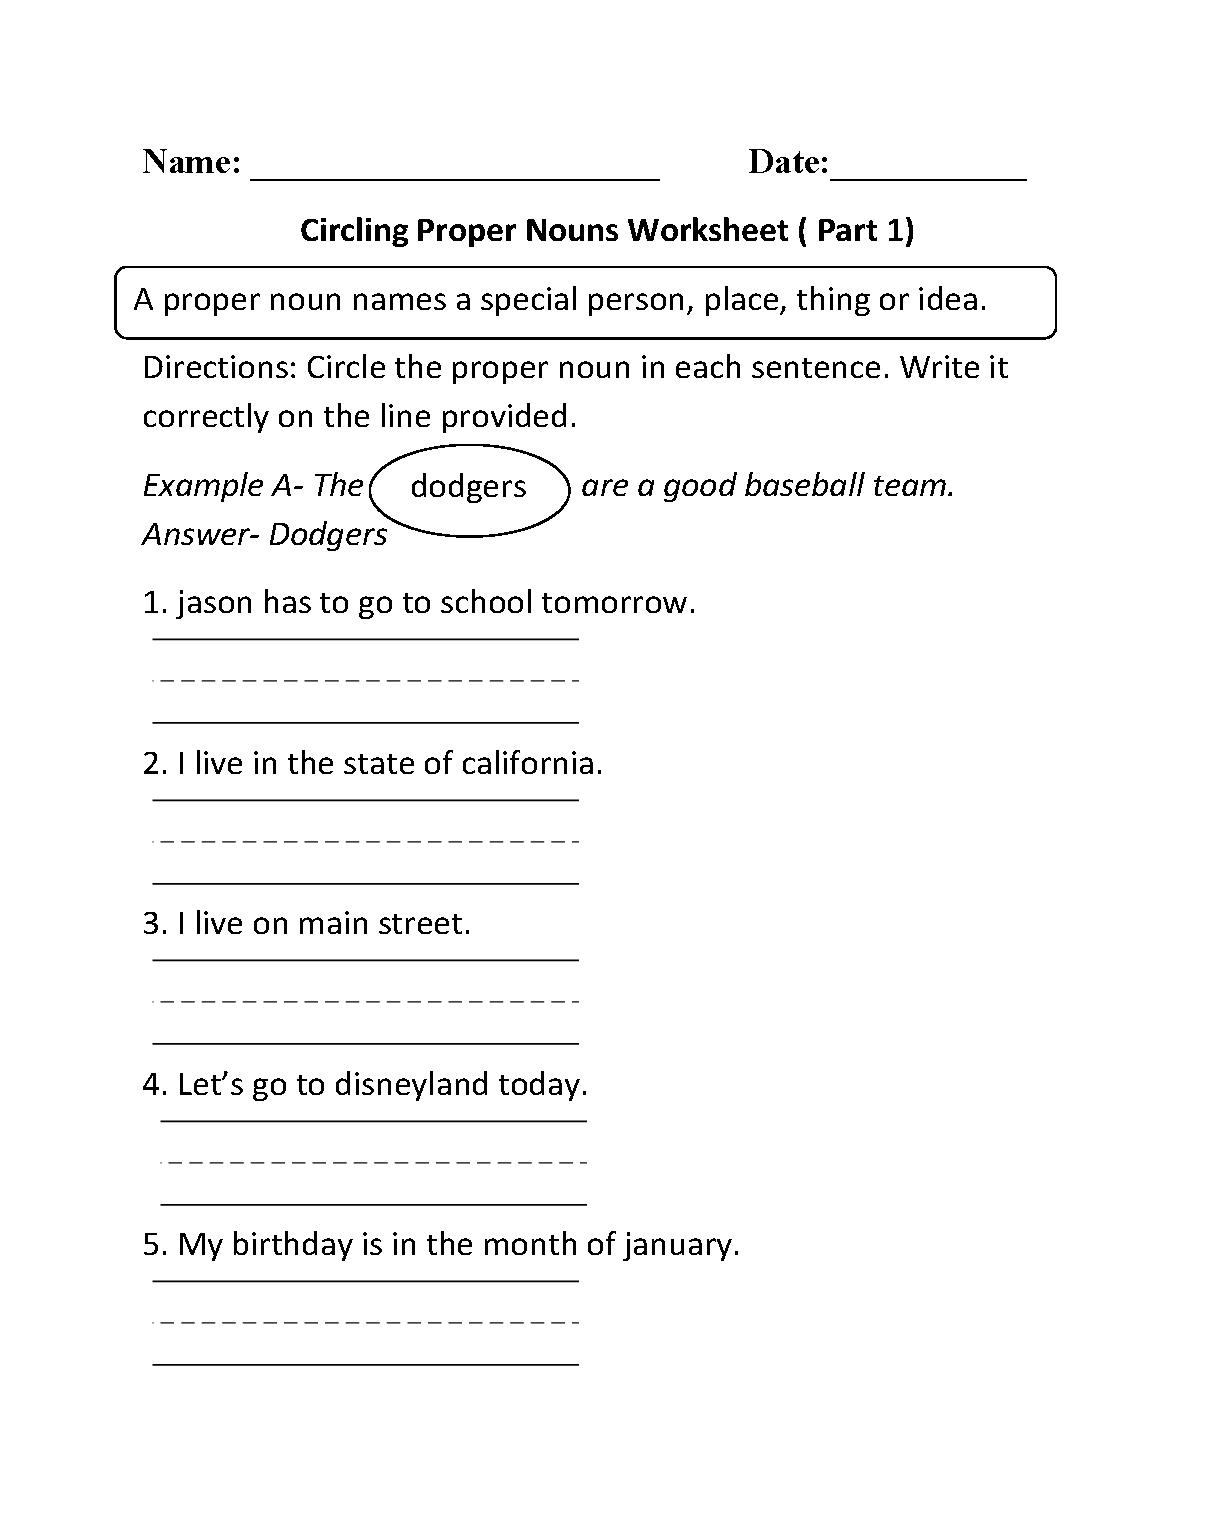 Proper and Common Nouns Worksheets – Proper and Common Nouns Worksheet